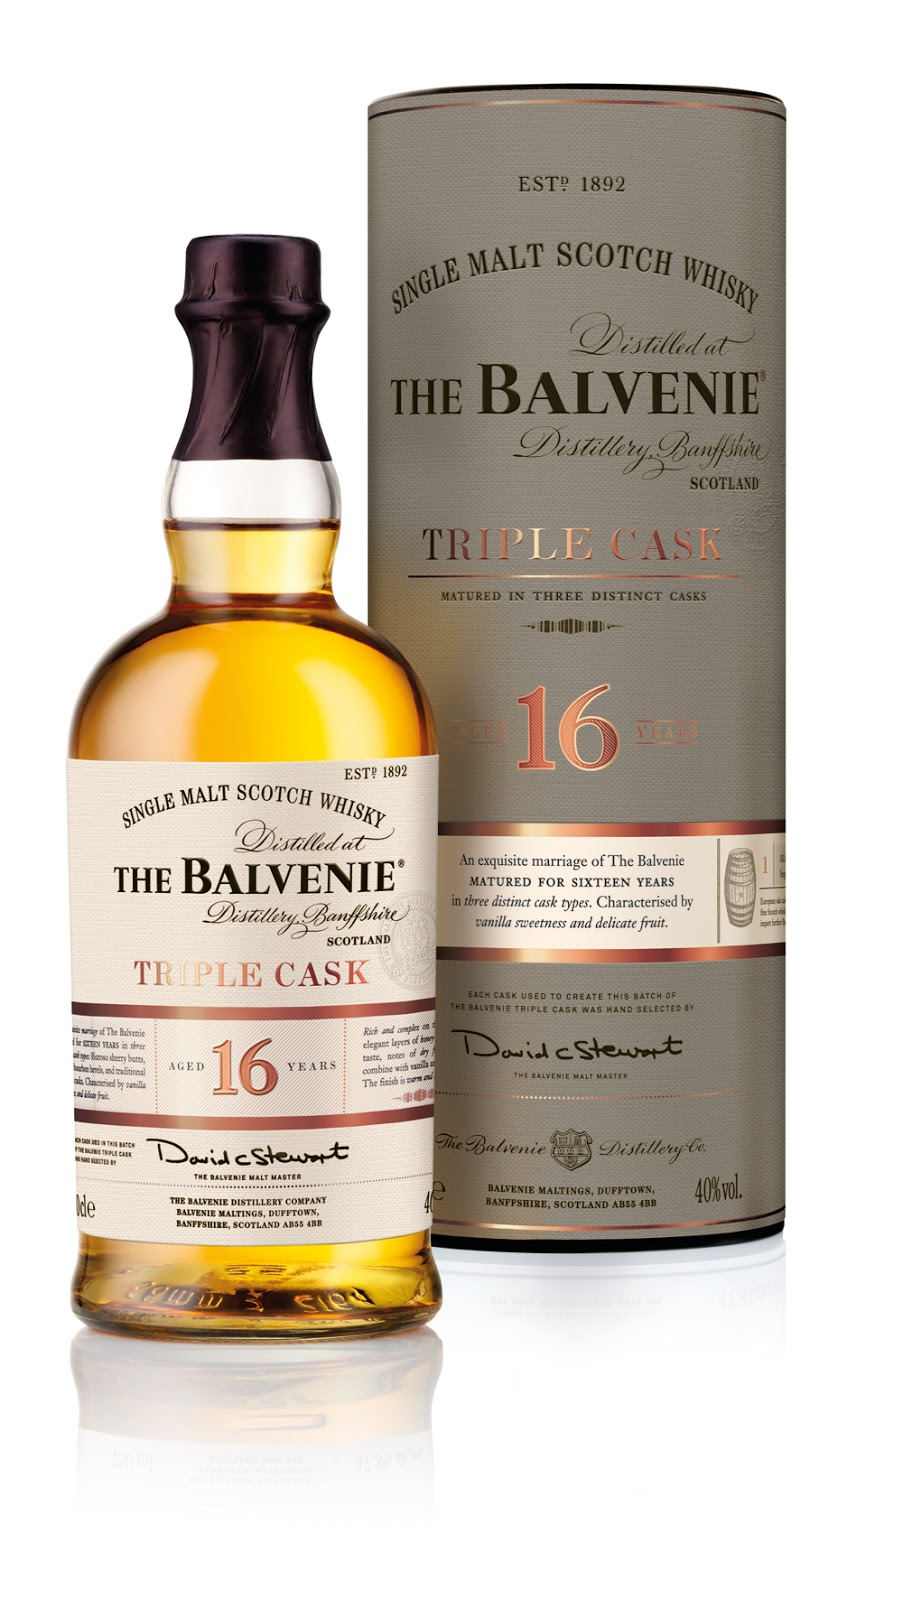 The Balvenie single malt scotch whisky (Doublewood 12 Years)